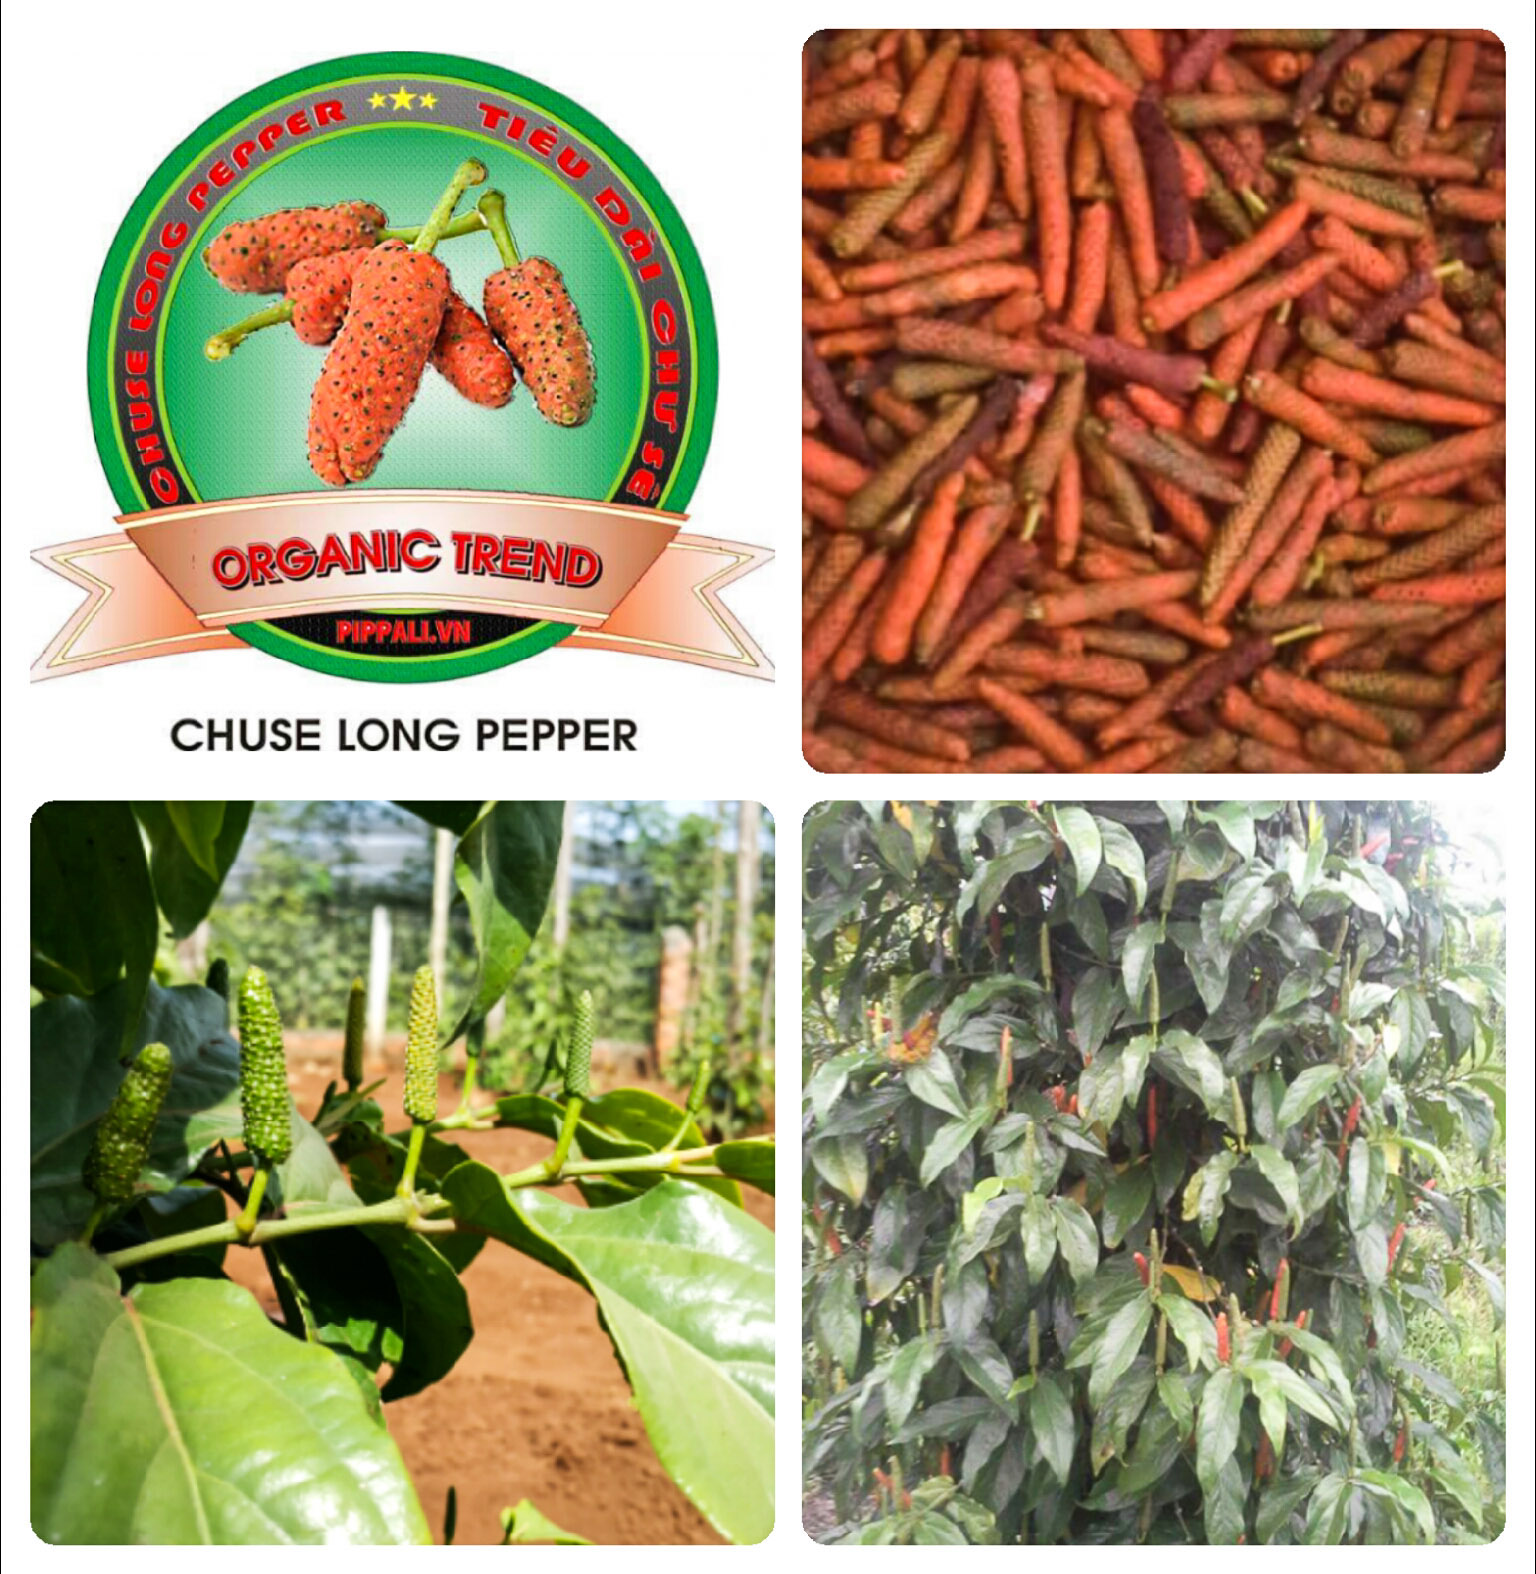 Chuse Long Pepper